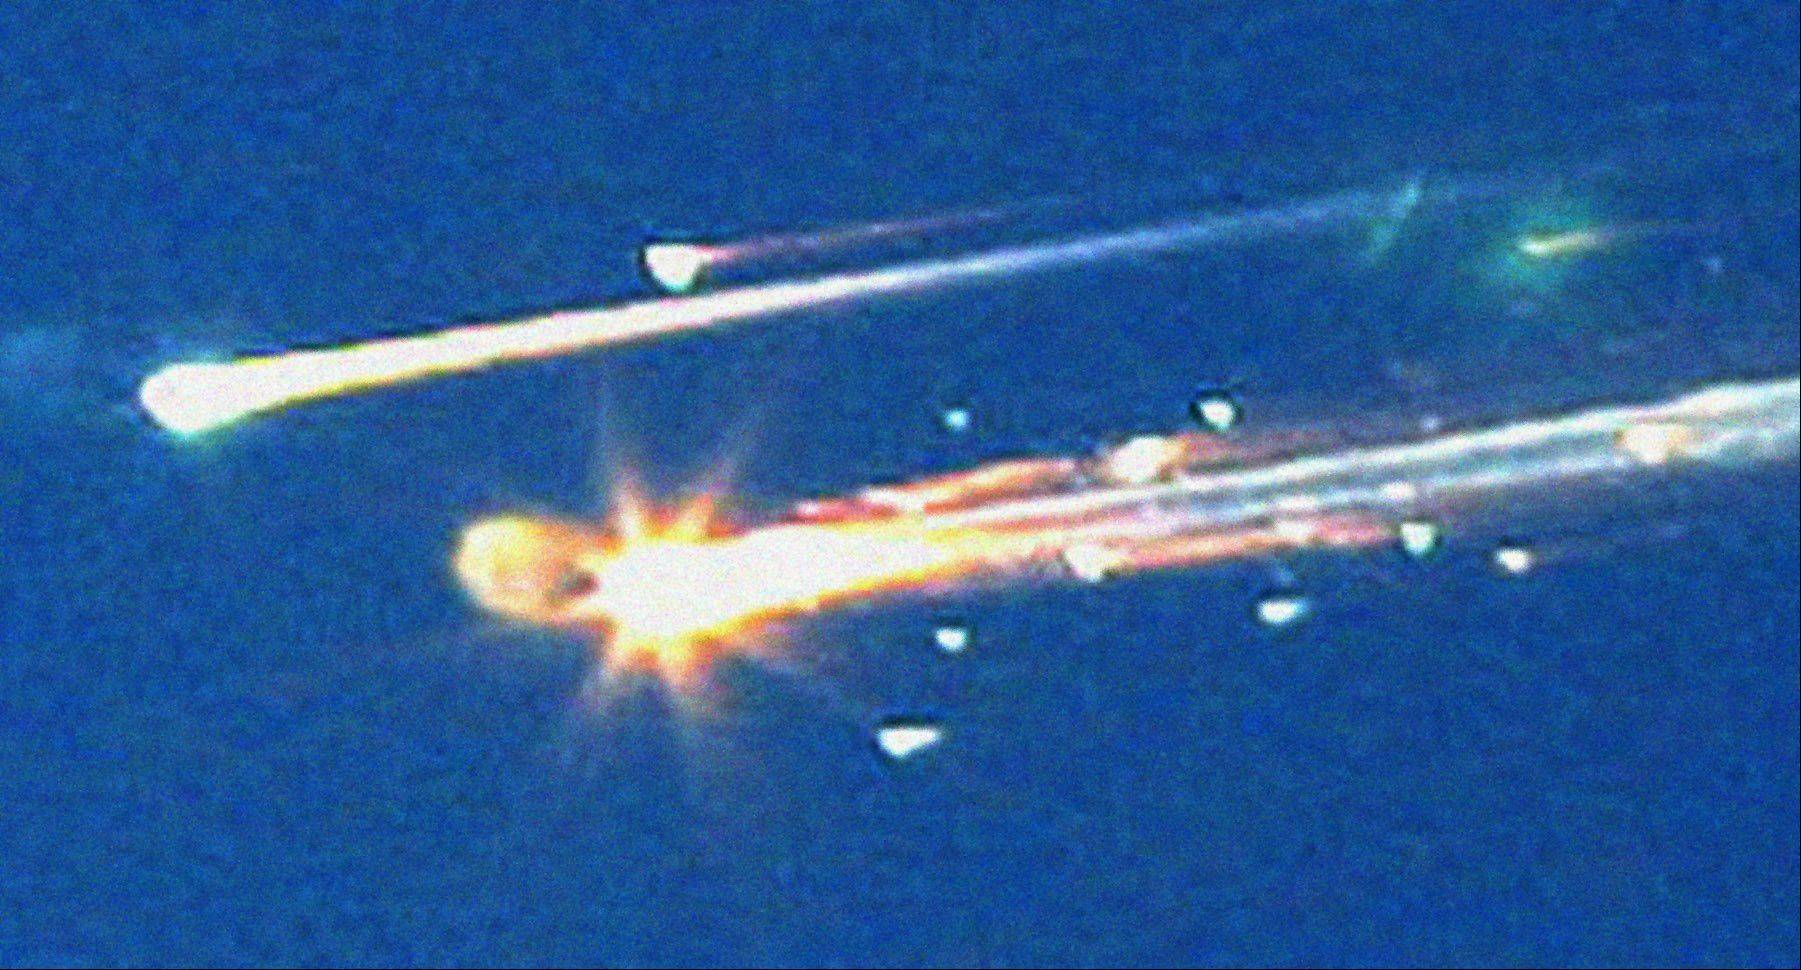 In this Saturday, Feb. 1, 2003 file photo, debris from the space shuttle Columbia streaks across the sky over Tyler, Texas.